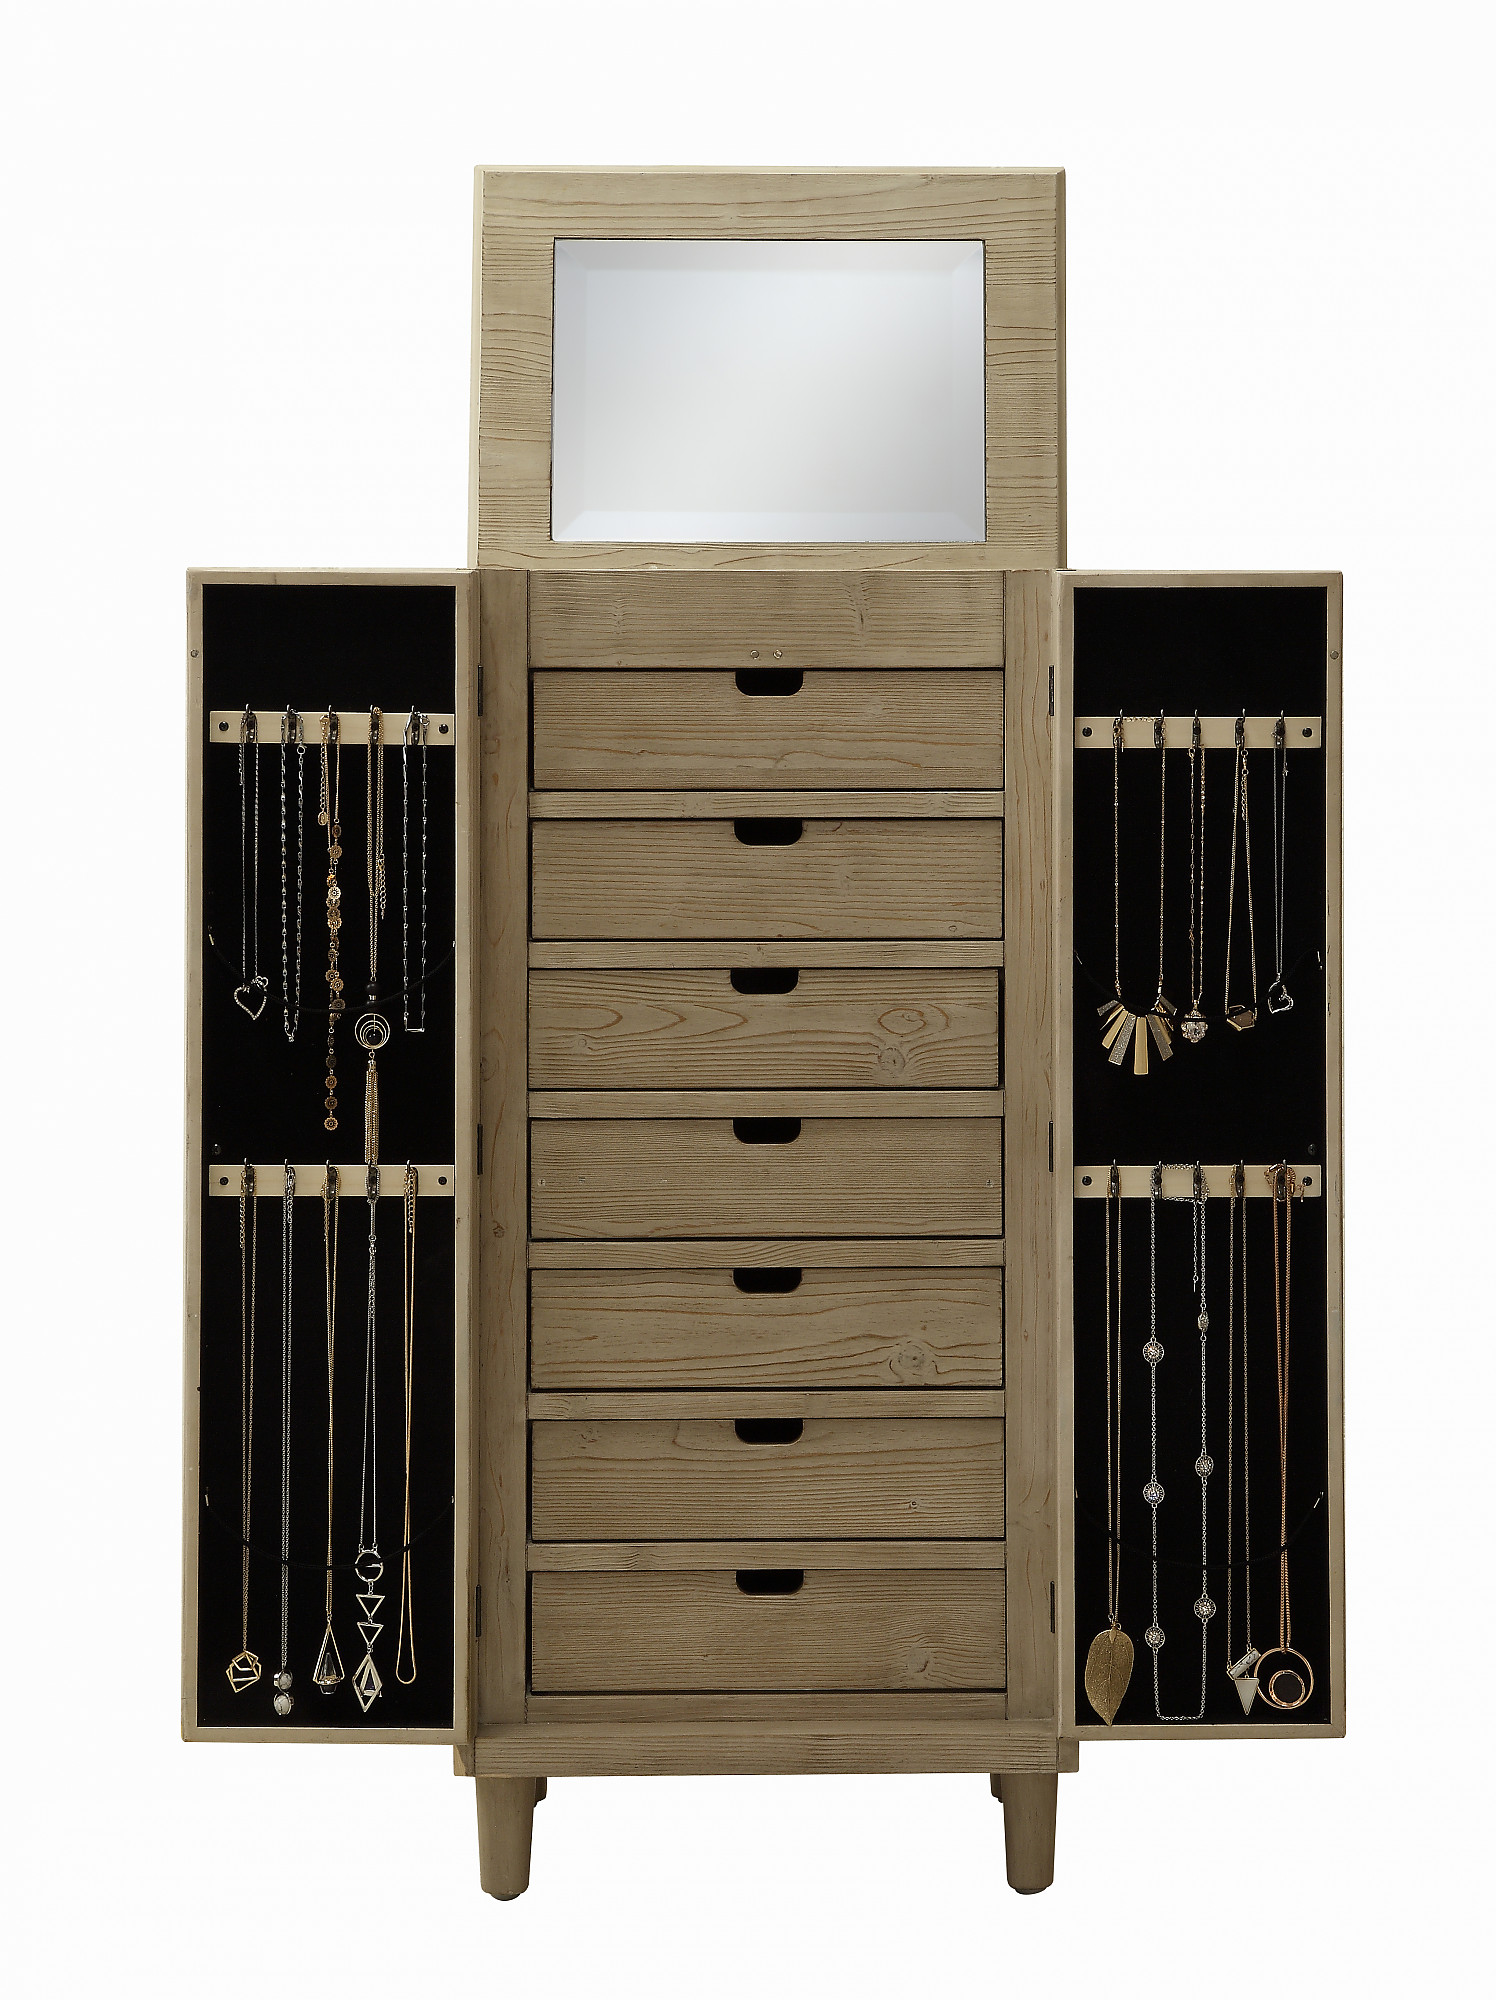 Exclusive 2 Door Large Jewelry Armoire Organizer Cabinet By Kathy